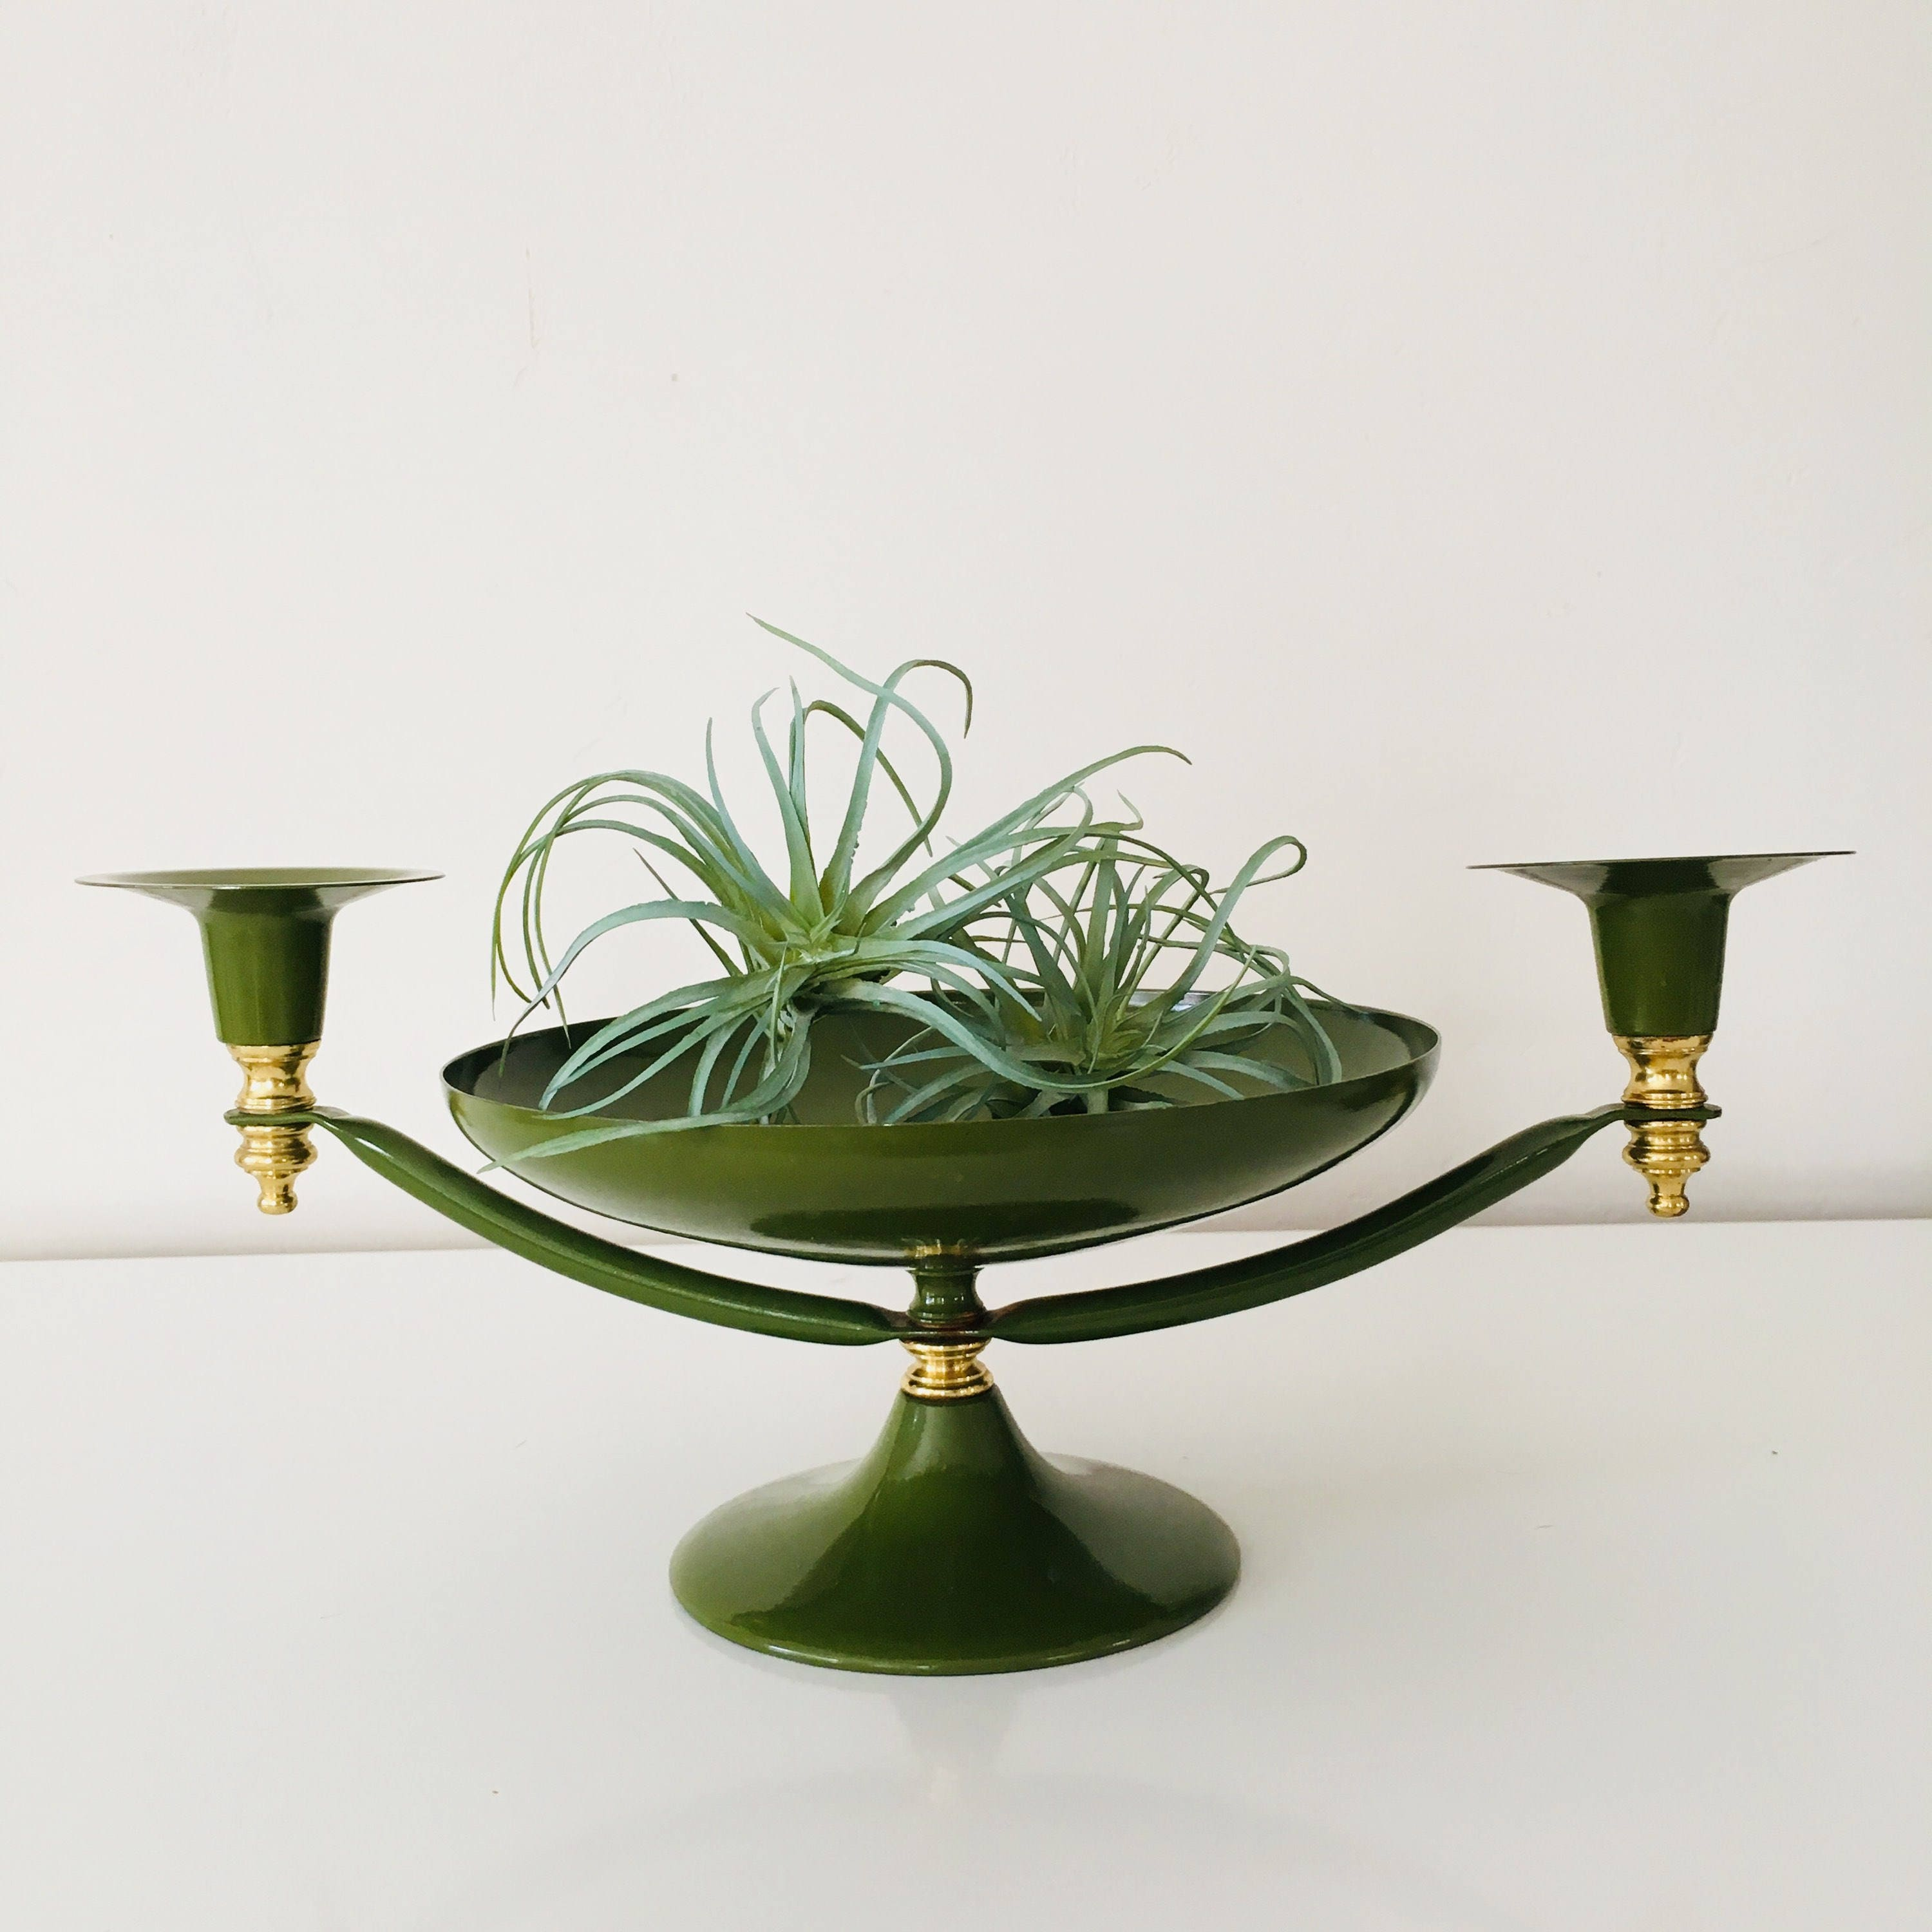 Vintage moss green candle holder mid century modern gold